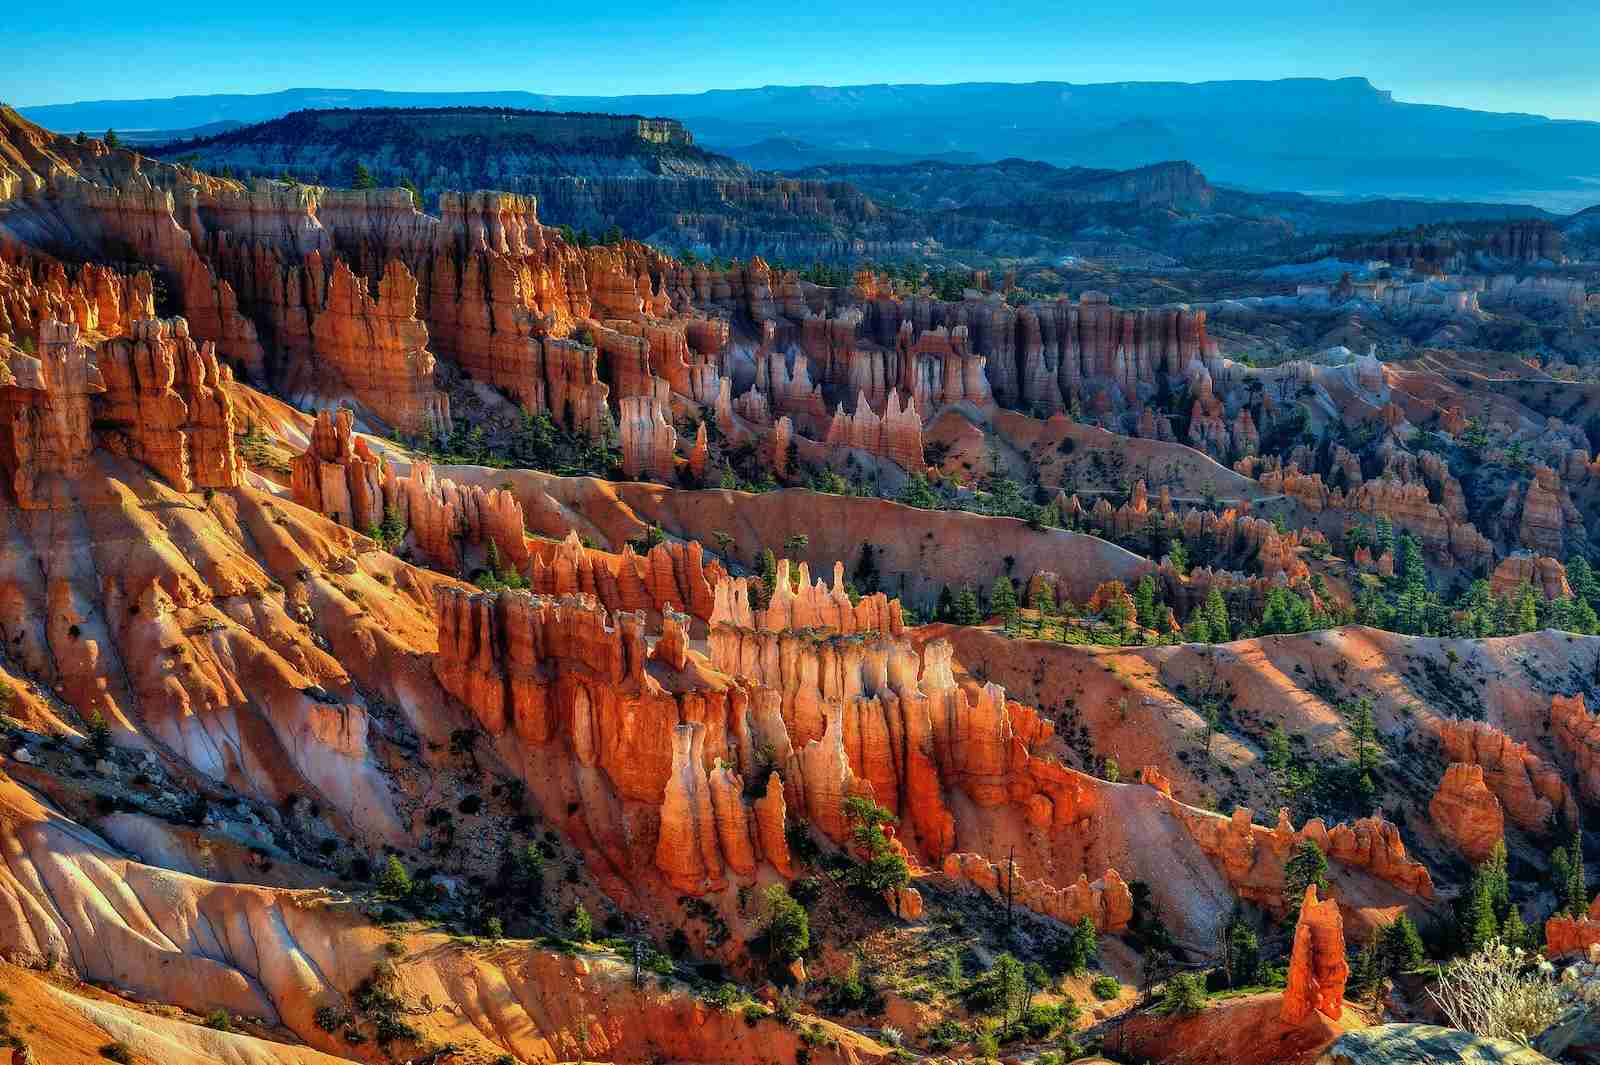 Bryce Canyon National Park. (Photo by Brent Clark Photography/Getty Images)